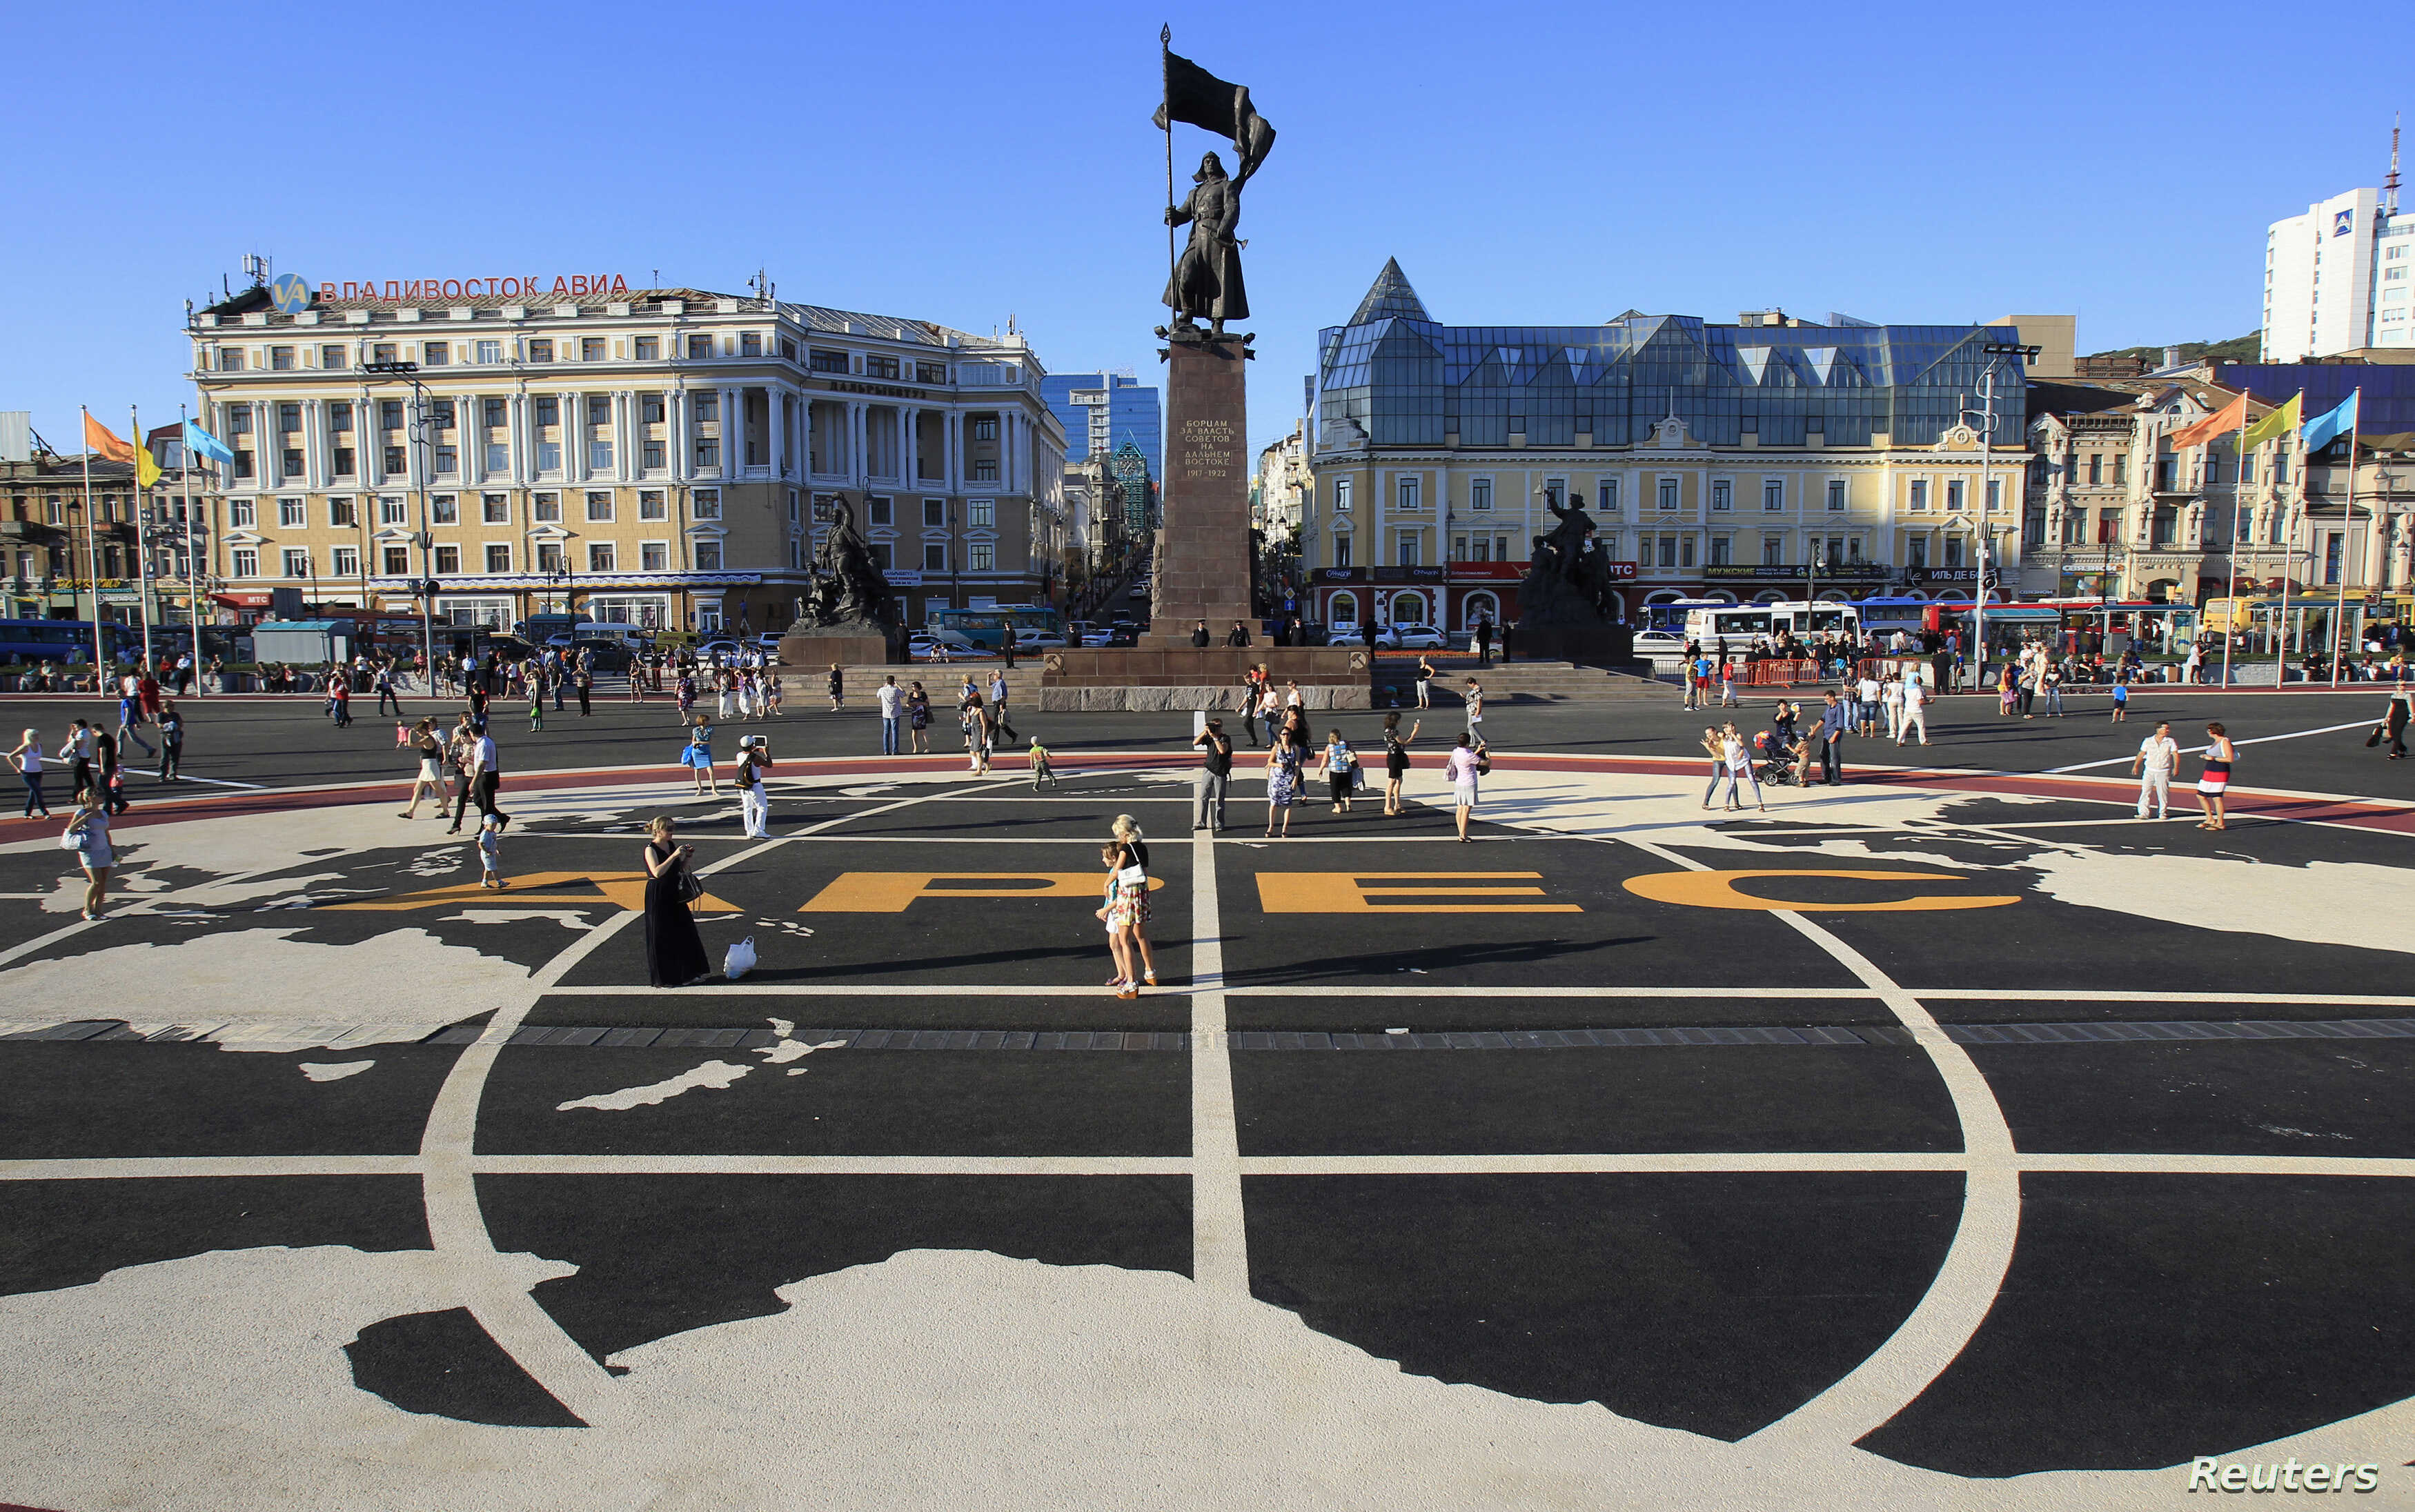 People walk over a tarmac with the Asia-Pacific Economic Cooperation (APEC) logo printed on it, in a central square of Vladivostok, Russia, September 6, 2012.